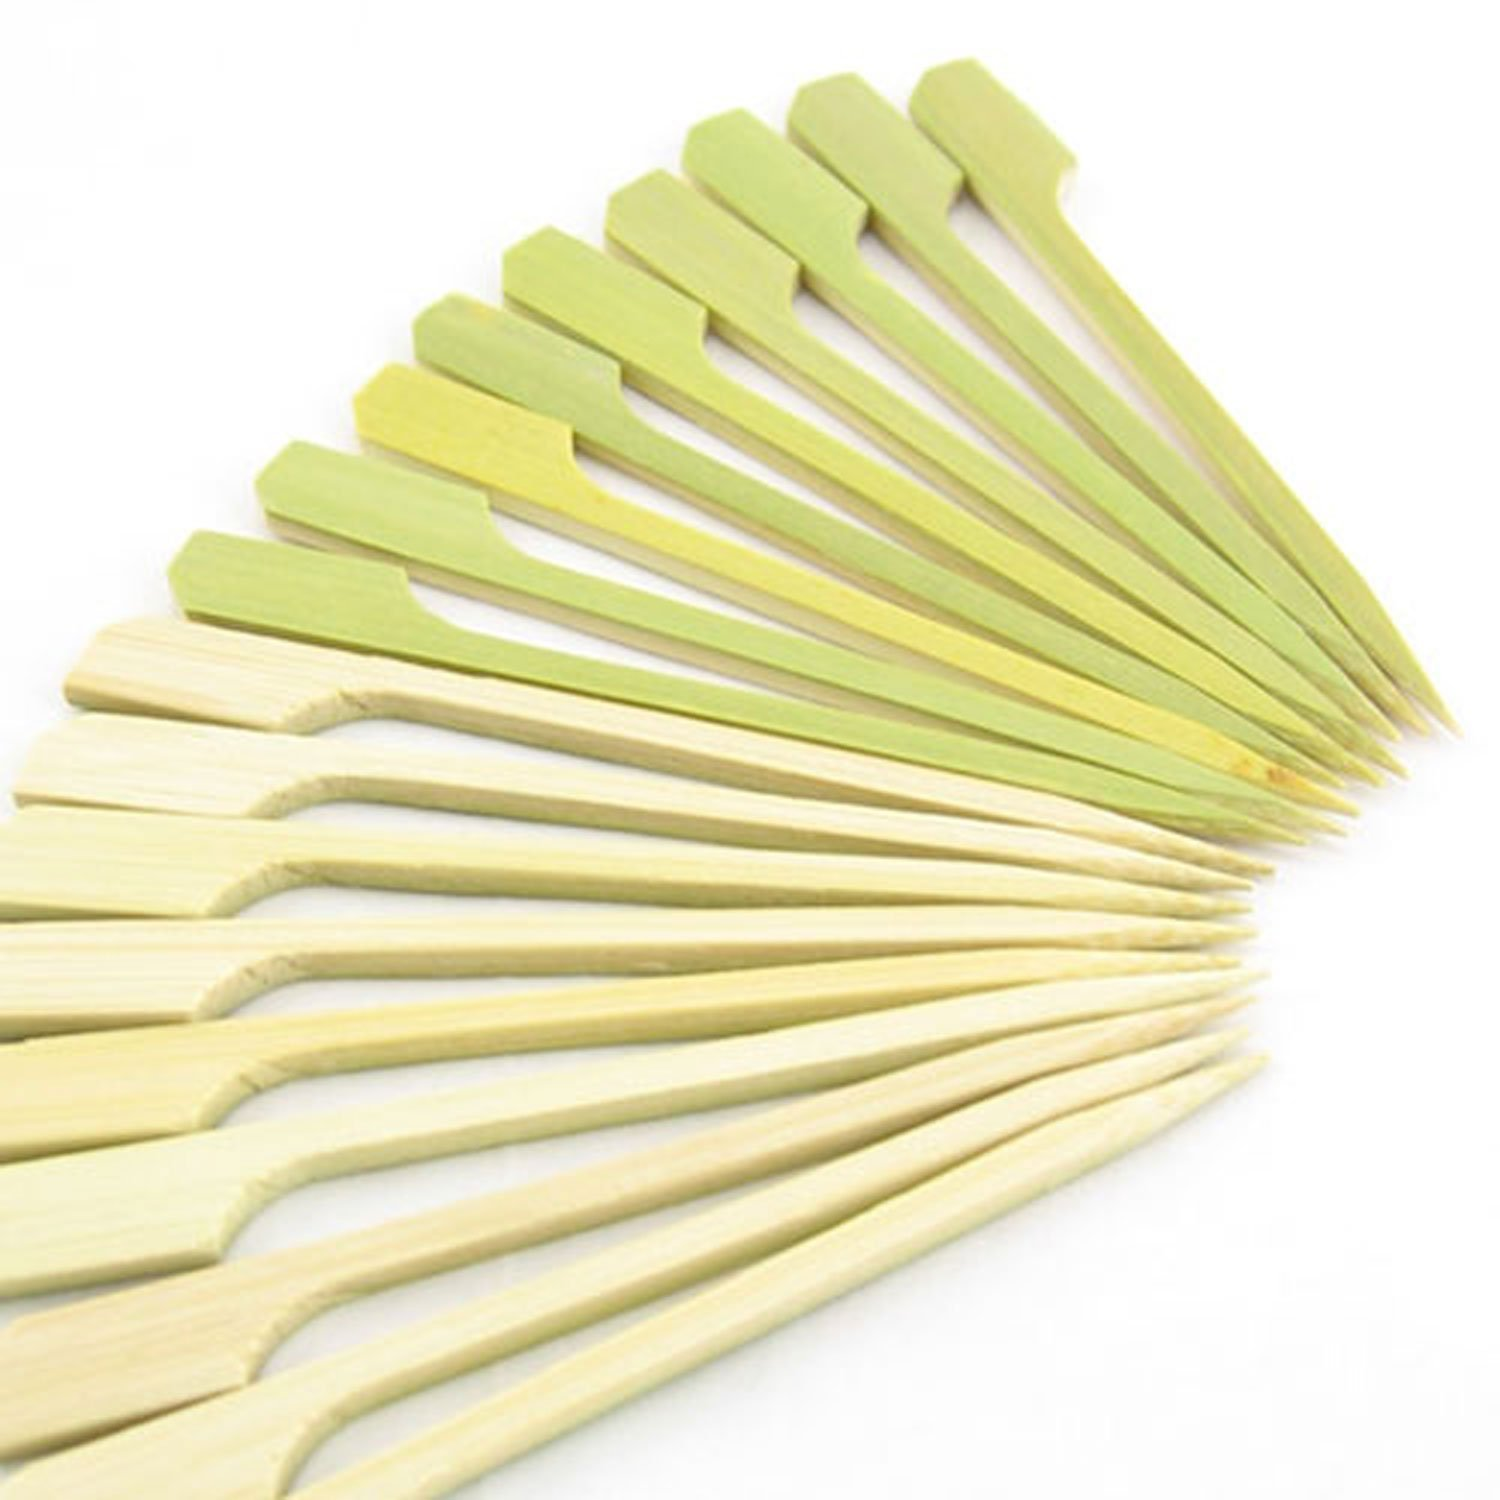 BambooMN 4.5'' Bamboo Paddle Cocktail Fruit Sandwich Food Picks Skewers for Catered Events, Holiday's, Restaurants or Buffets Party Supplies, 1000 Pieces